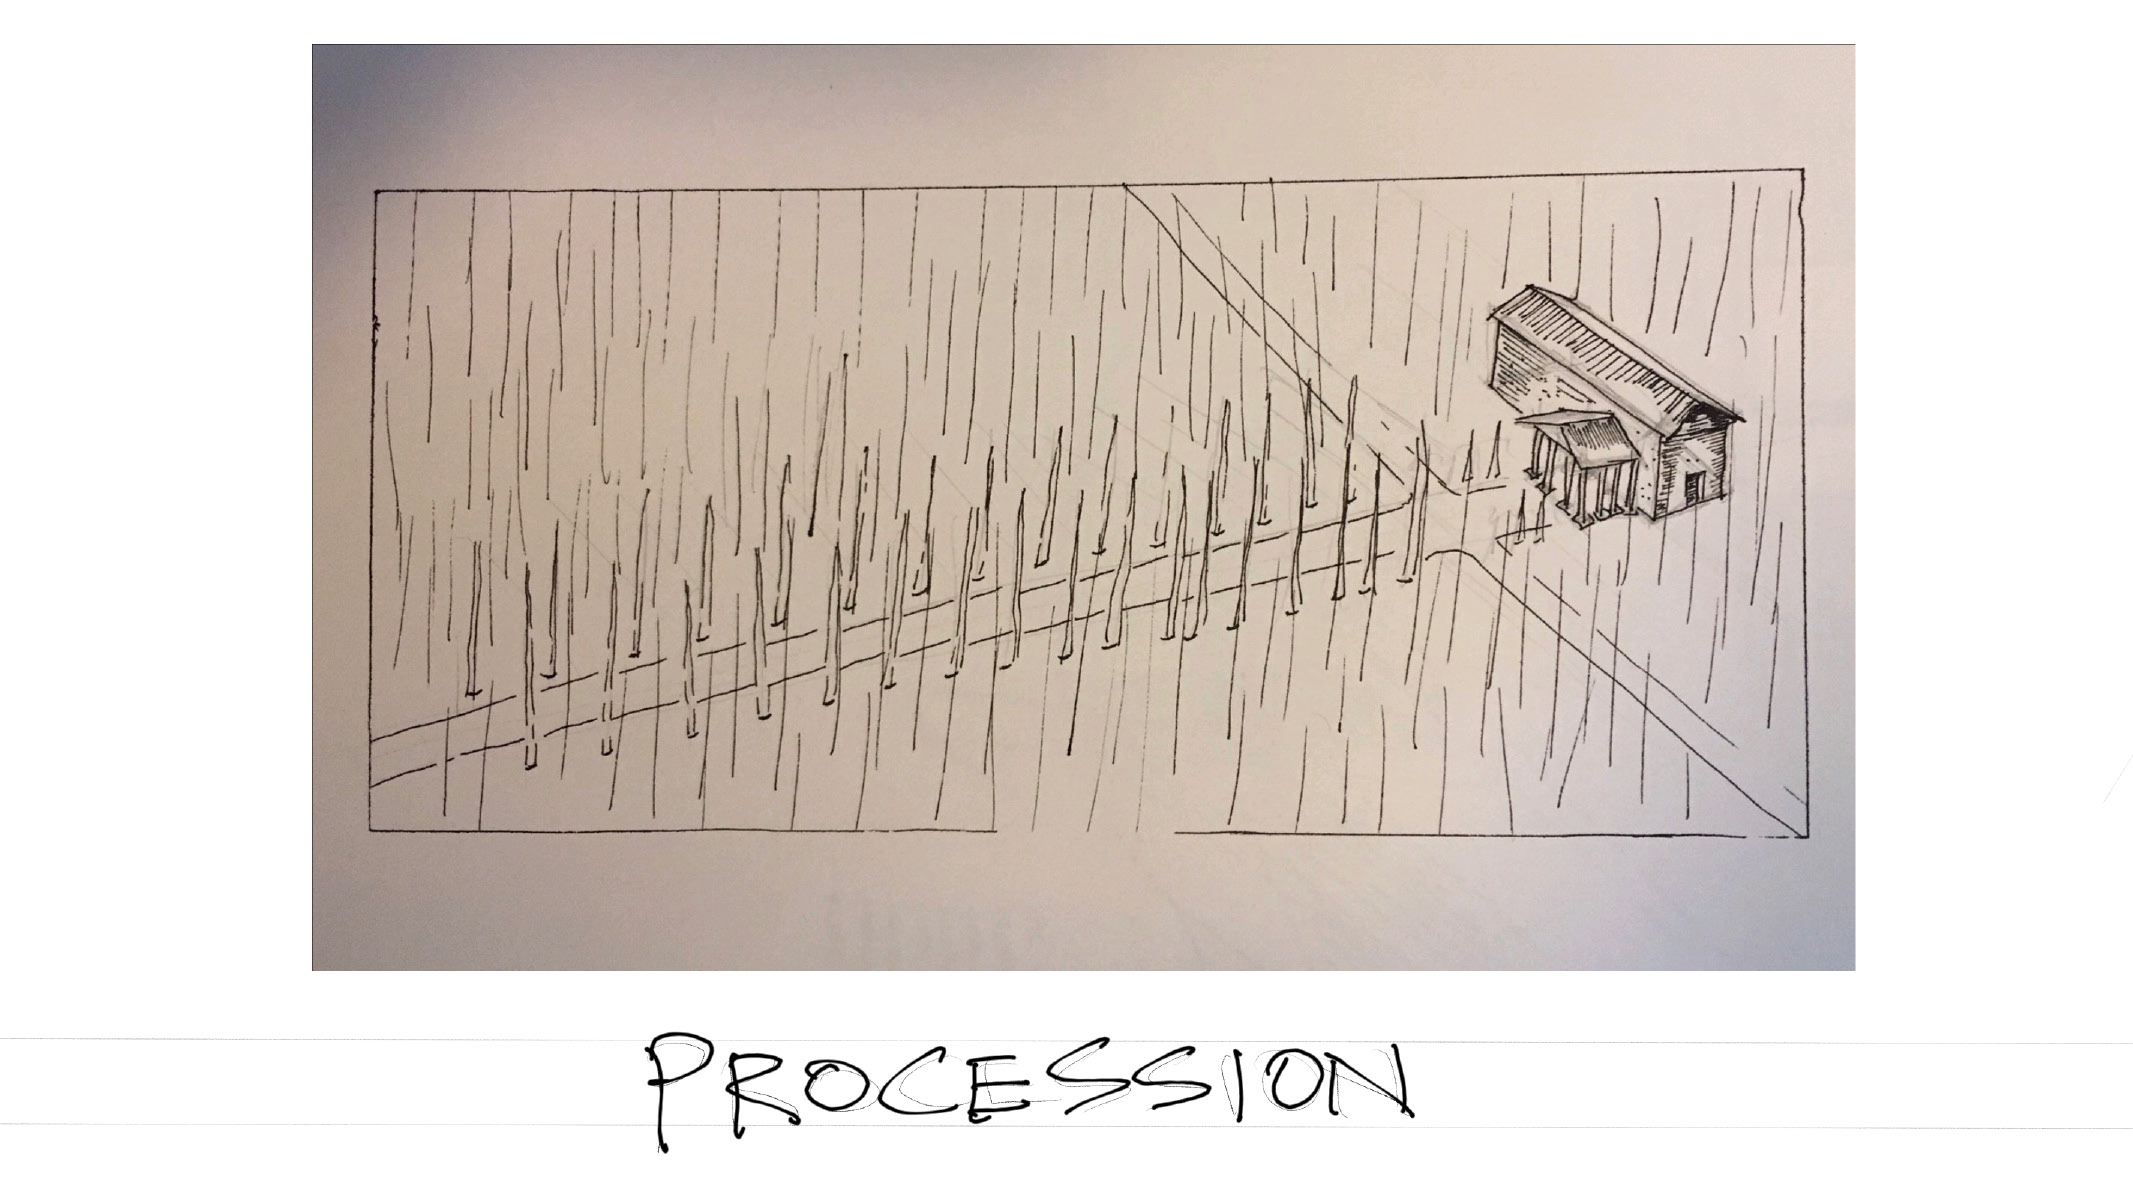 Flashcard: Procession